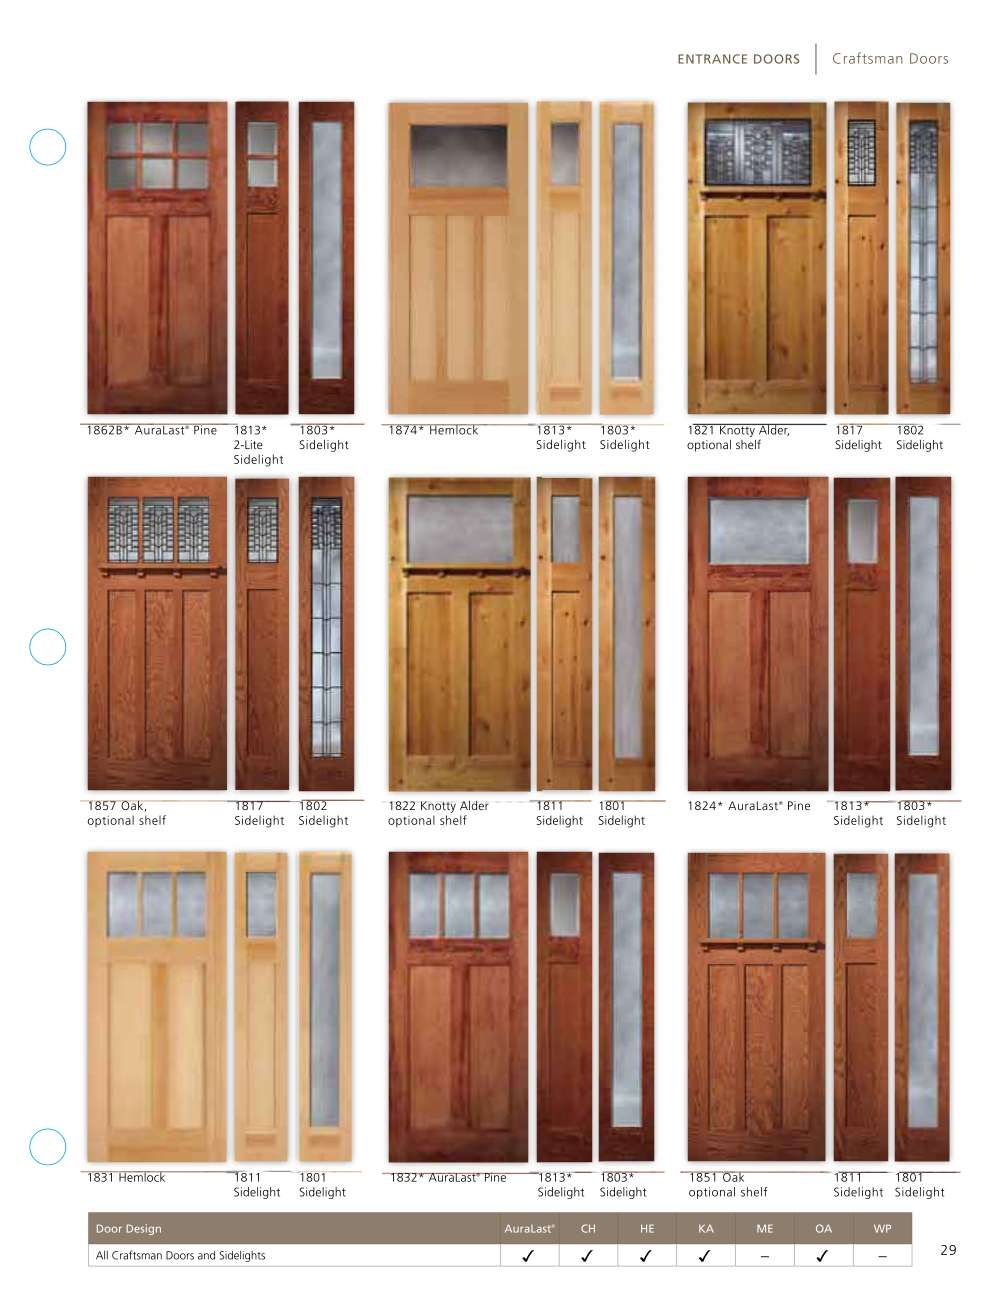 Jeld wen craftsman exterior door with sidelights jeld for Buy jeld wen windows online